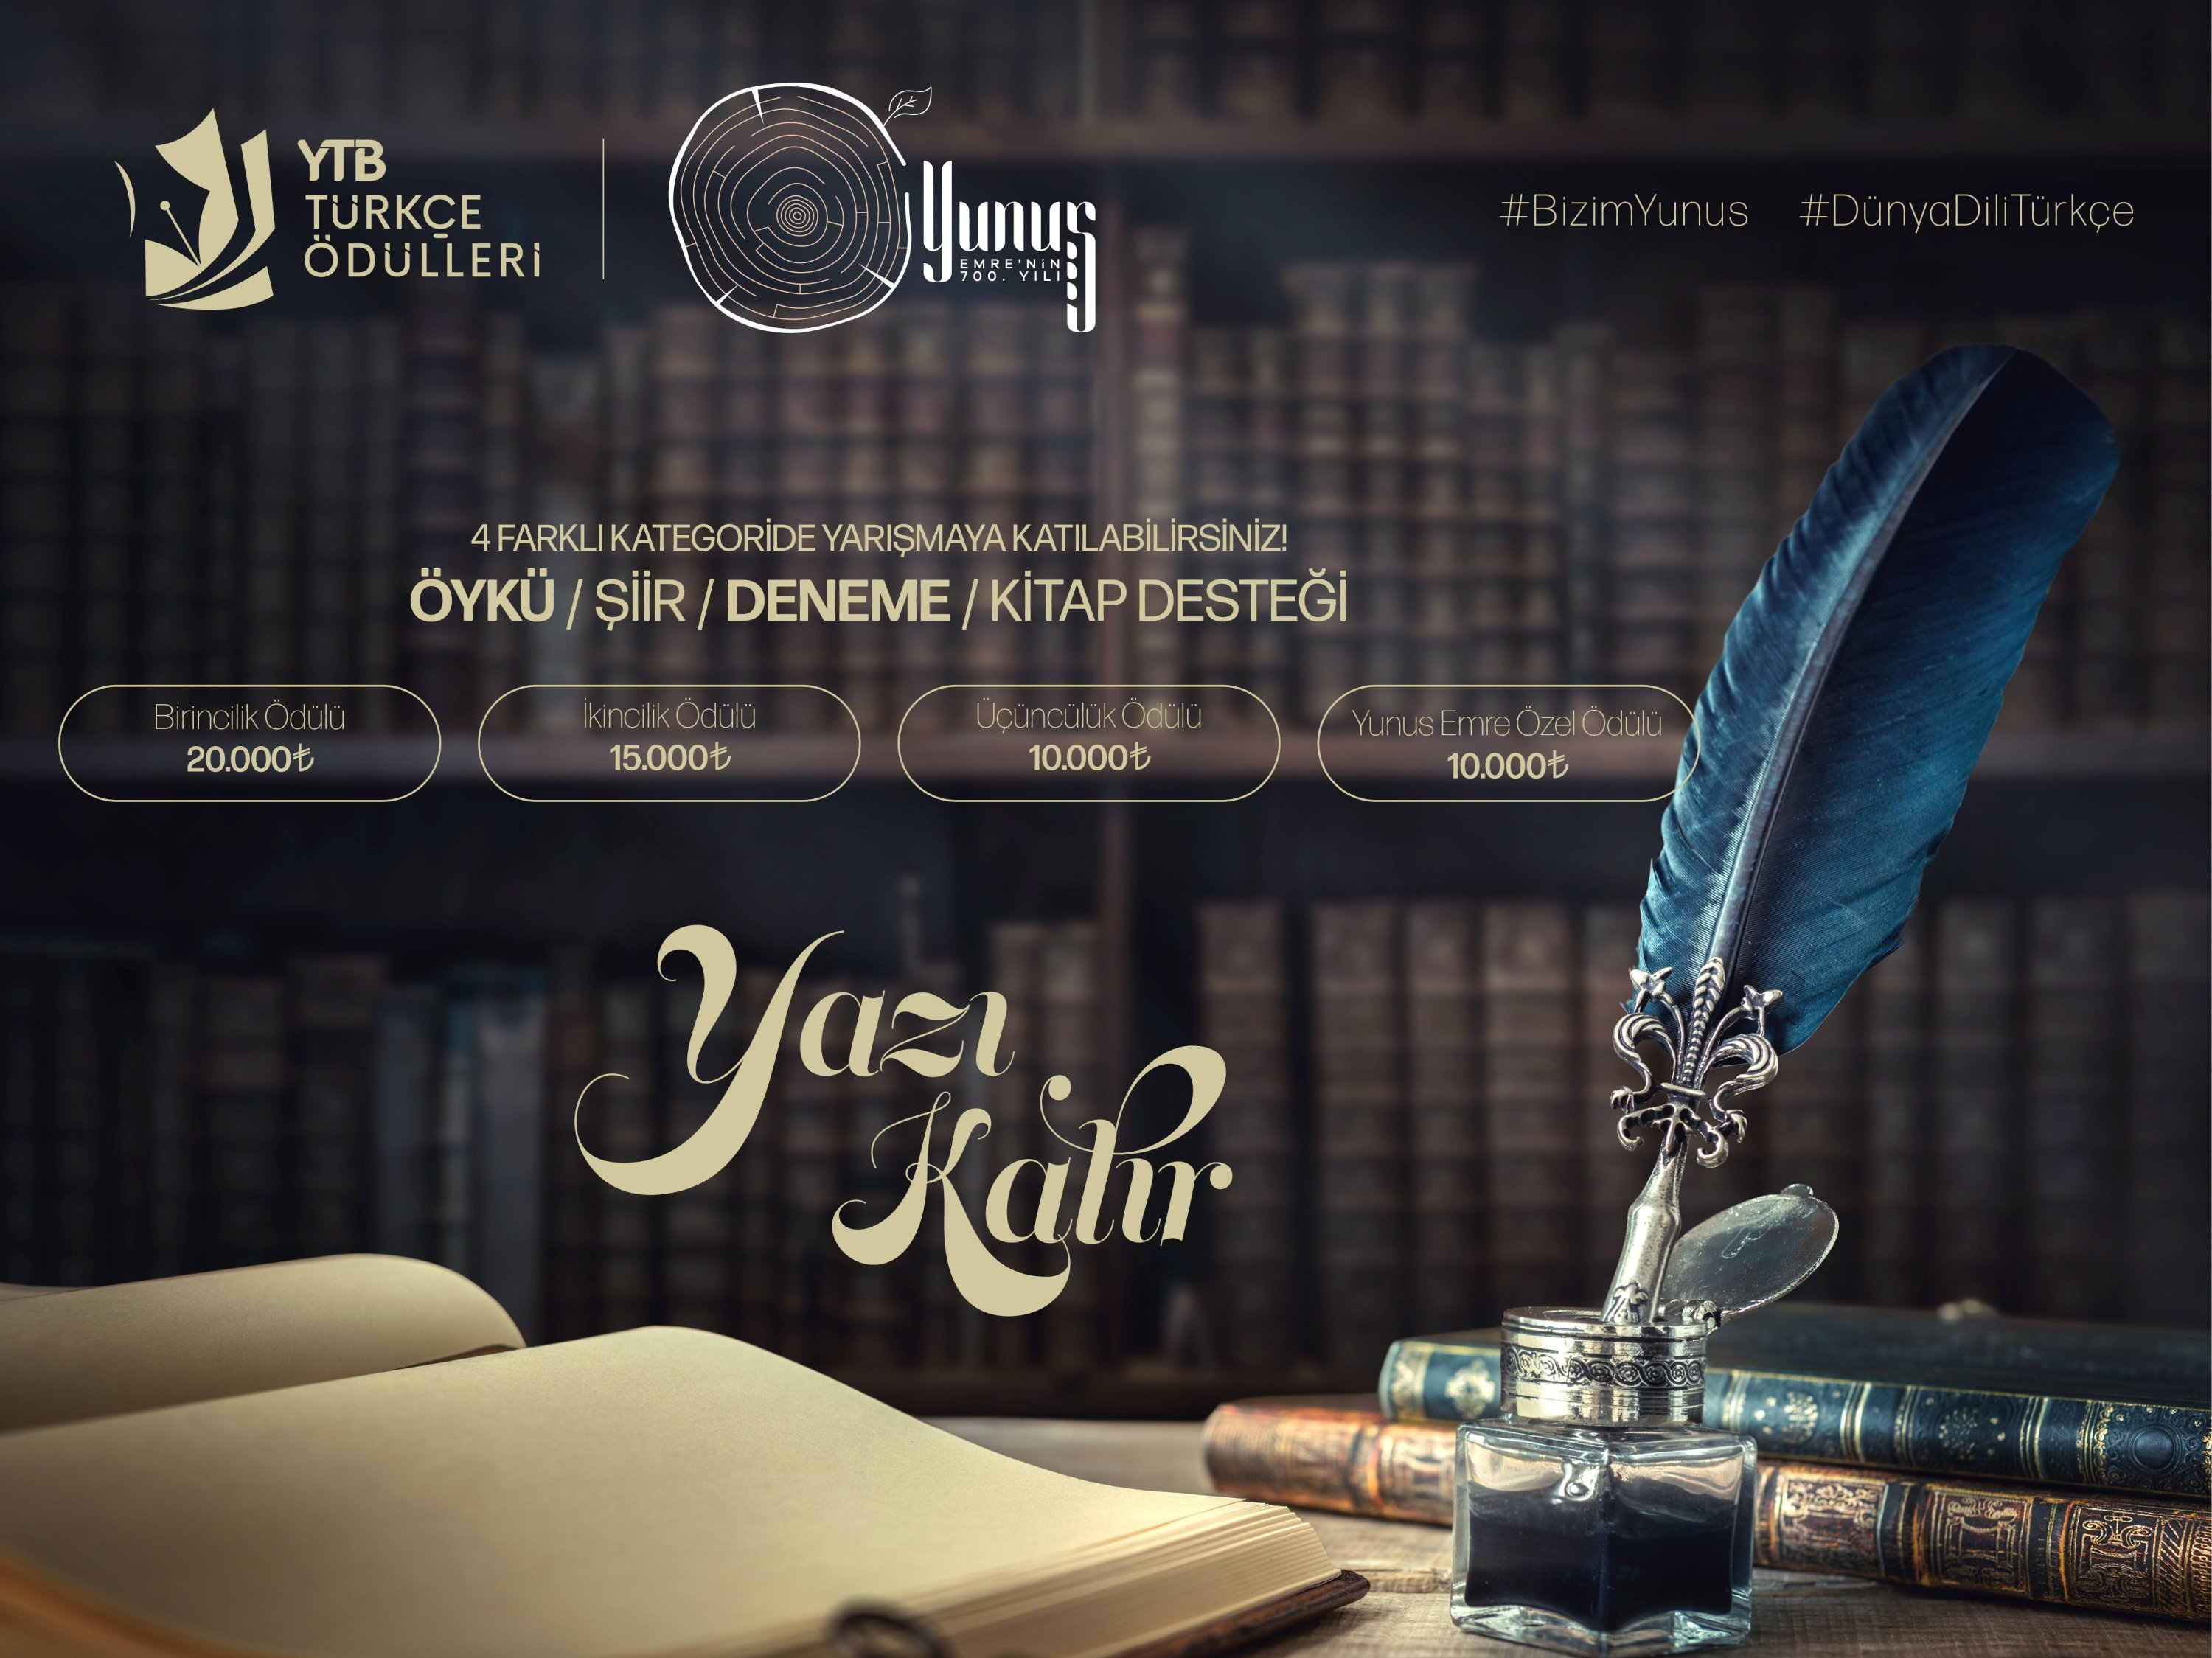 A still shot from the YTB website providing details about the YTB Turkish Awards Yunus Emre Special. (AA PHOTO)